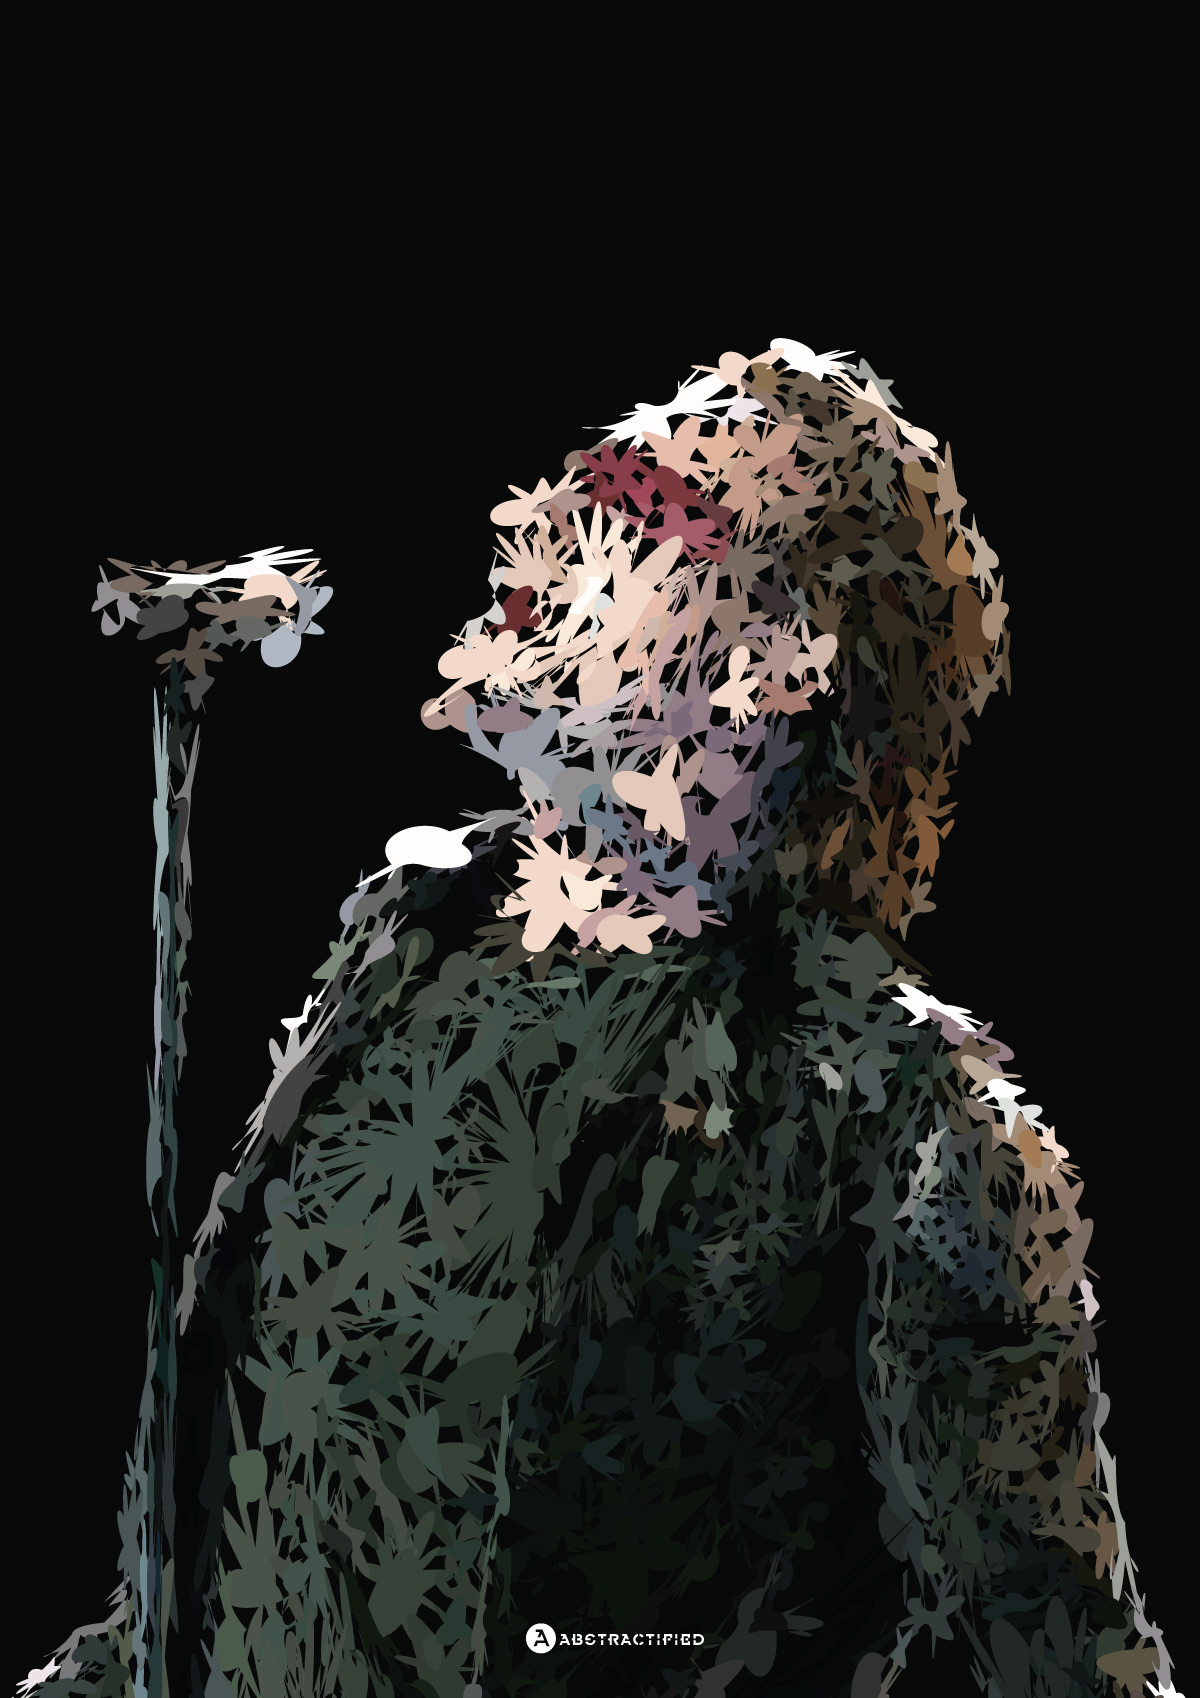 Abstractified Bono